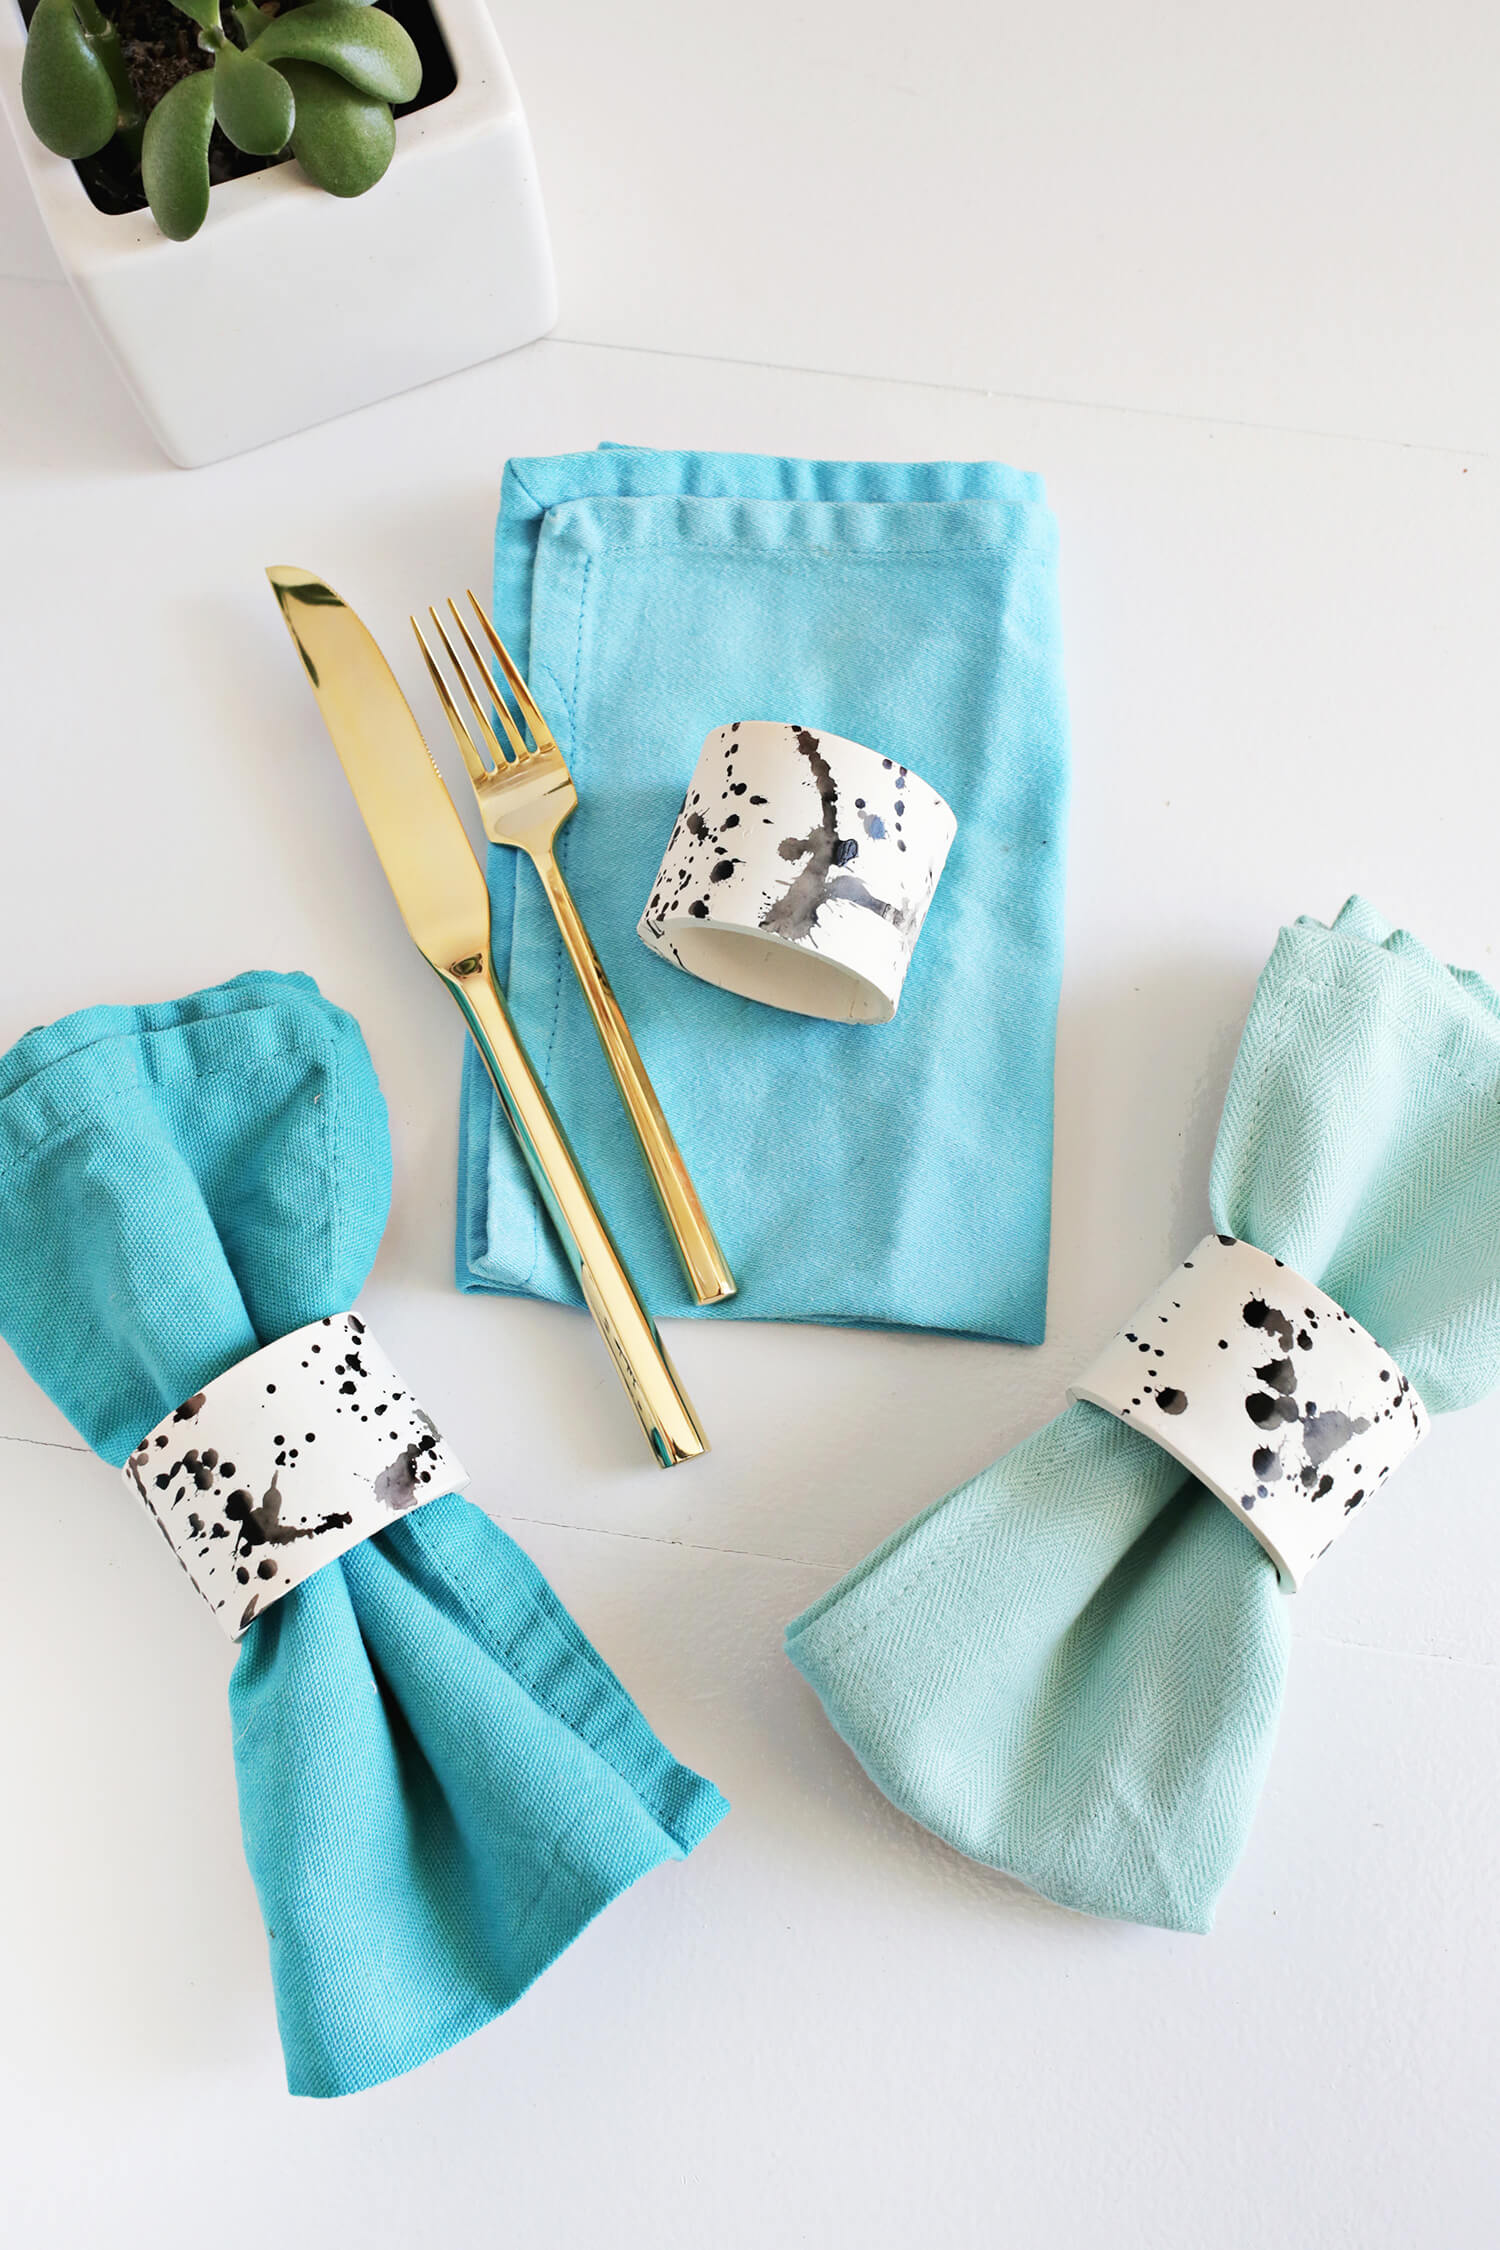 DIY Splatter Napkin Rings (click through for tutorial)